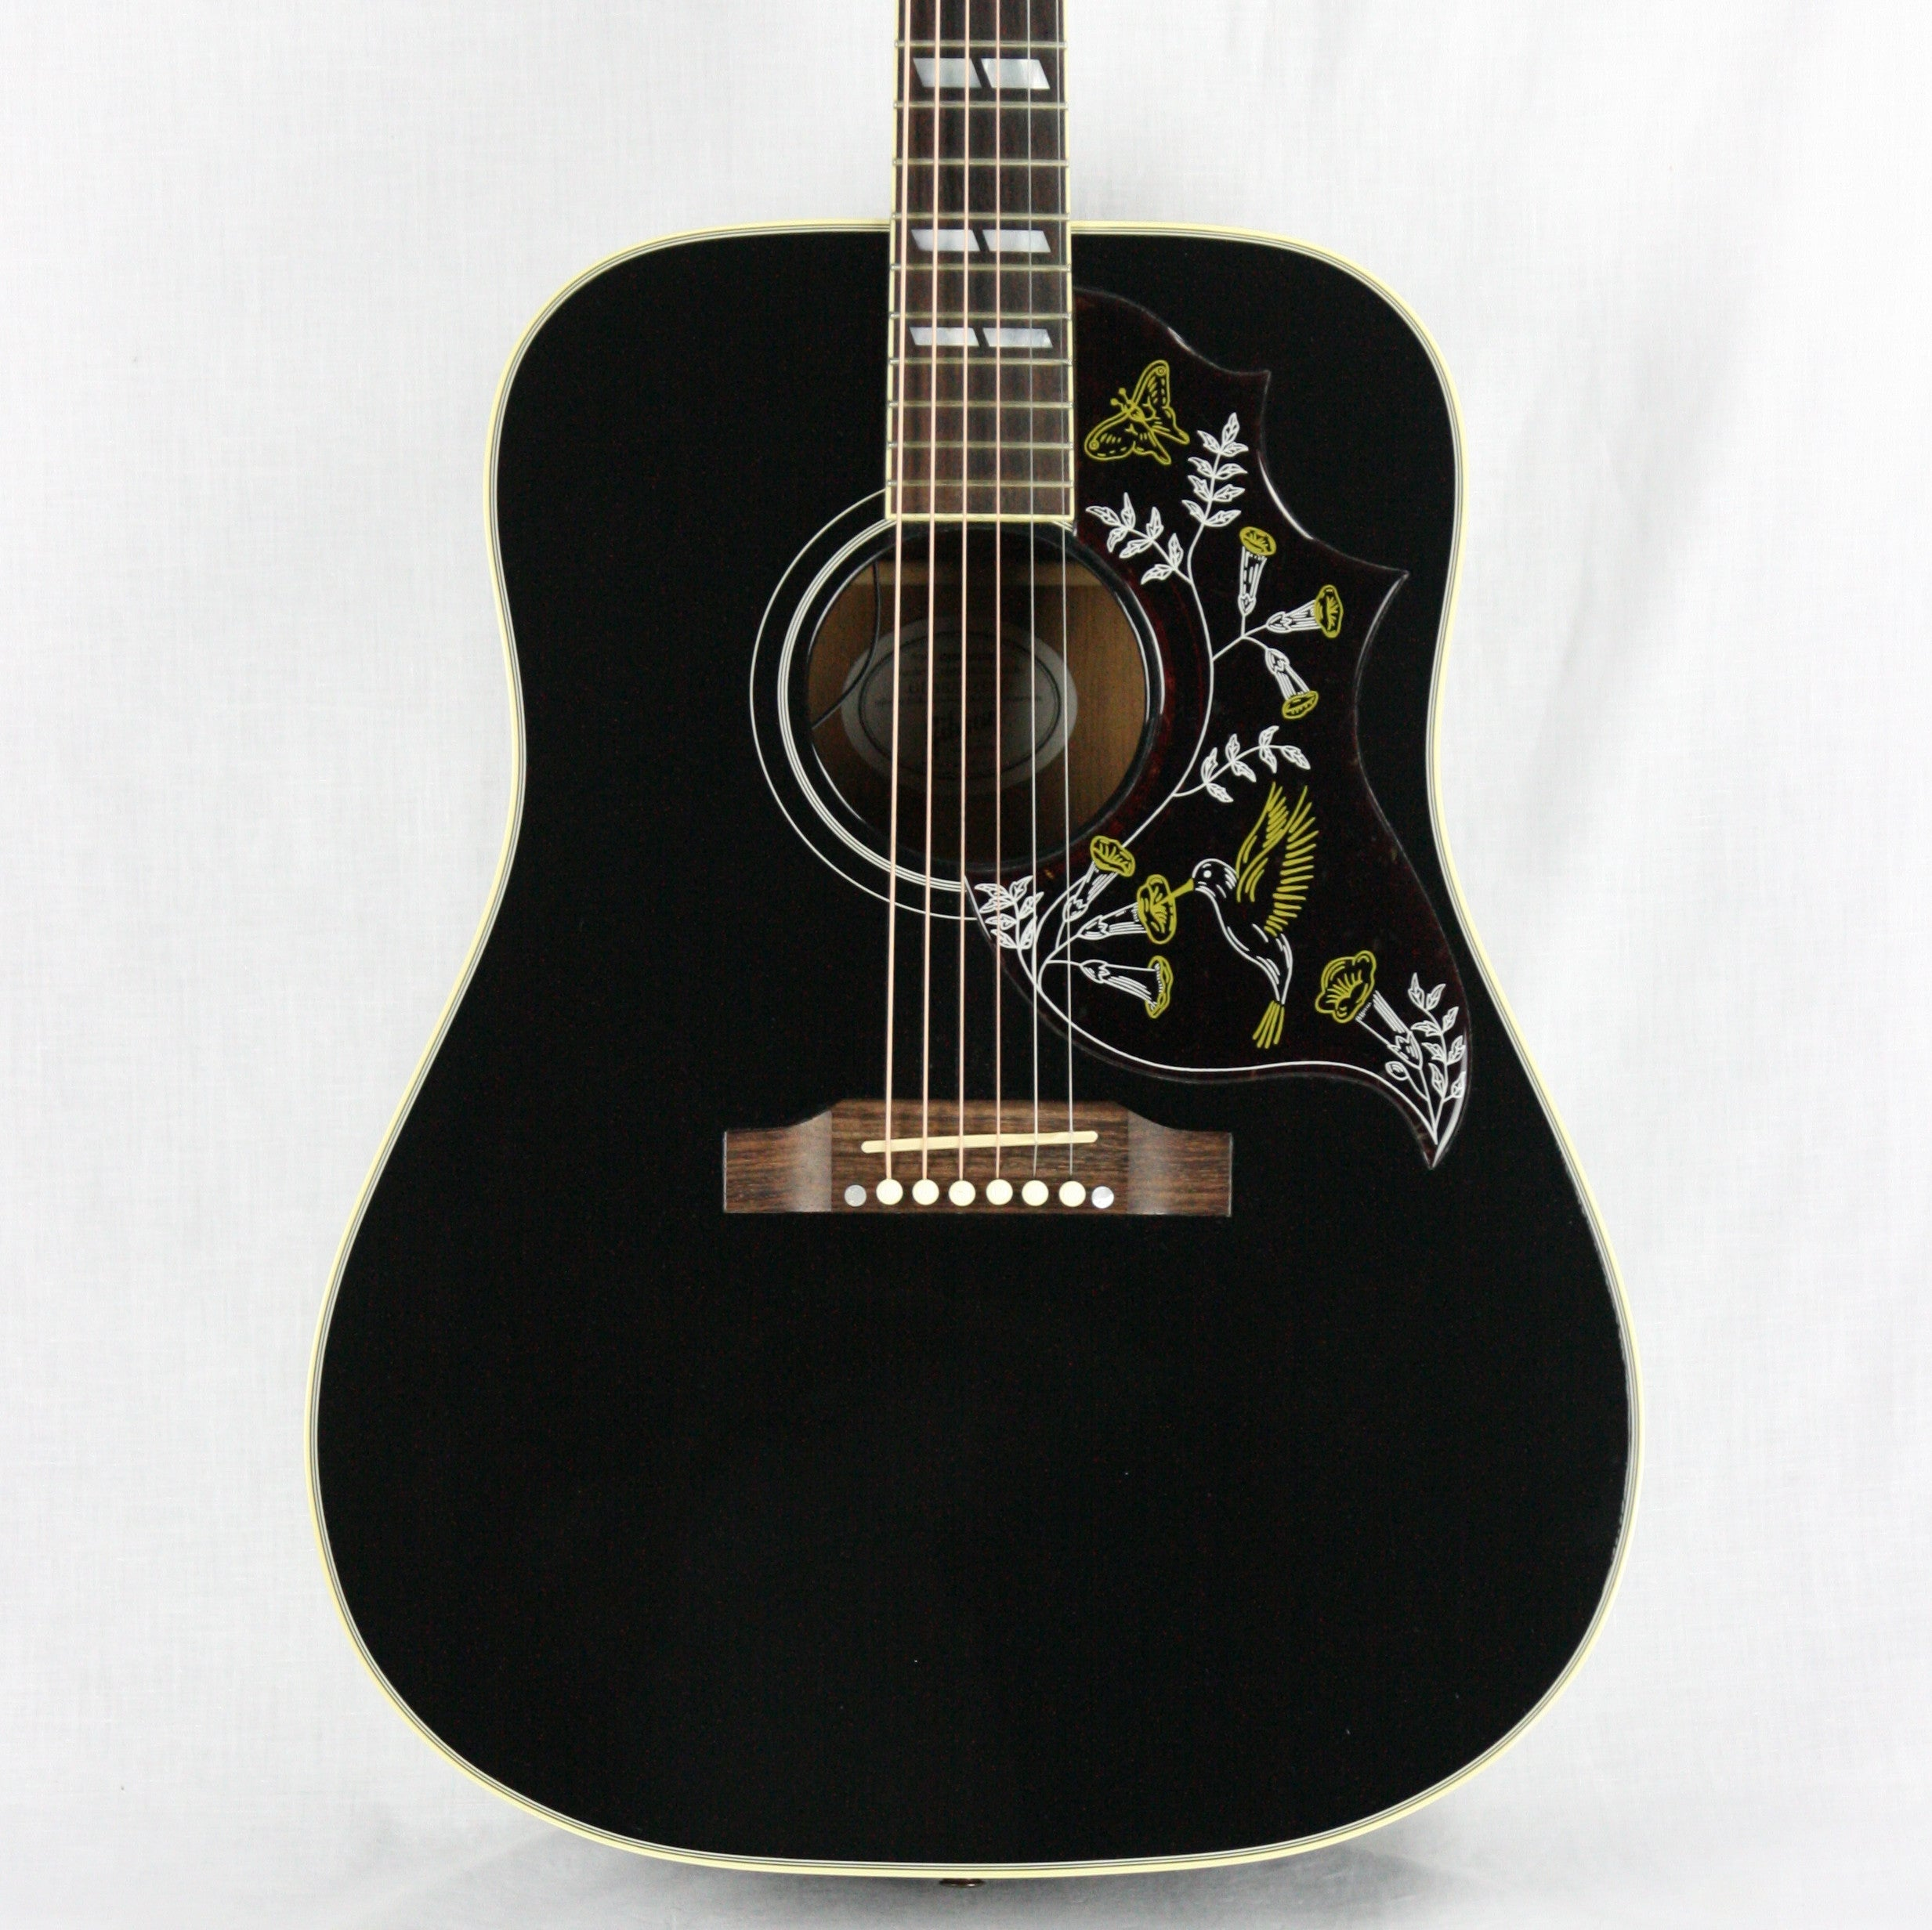 2012 Gibson Hummingbird in Ebony Black Finish! Dreadnought Acoustic Guitar j45 j200